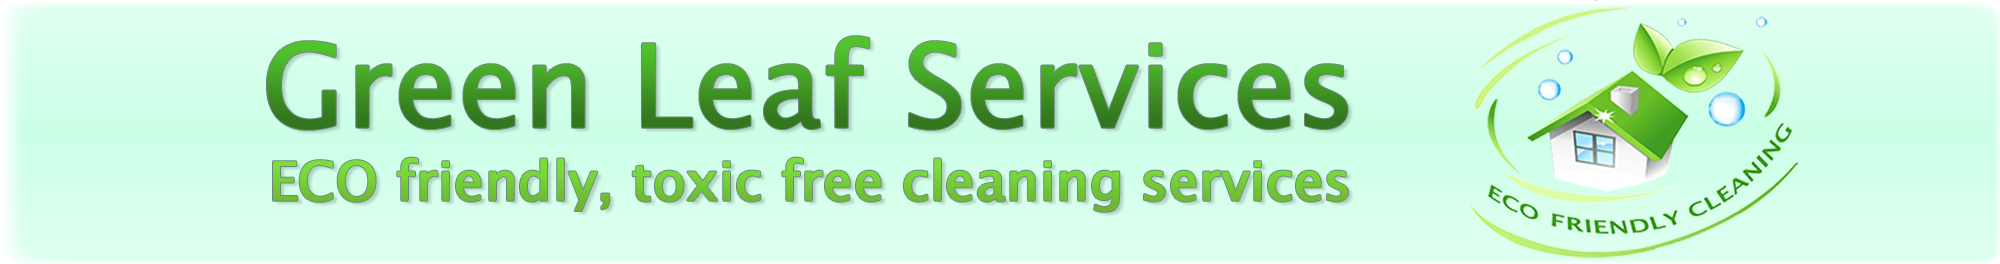 Green Leaf Services Dublin Eco friendly cleaning services, the greenest cleaners in Dublin